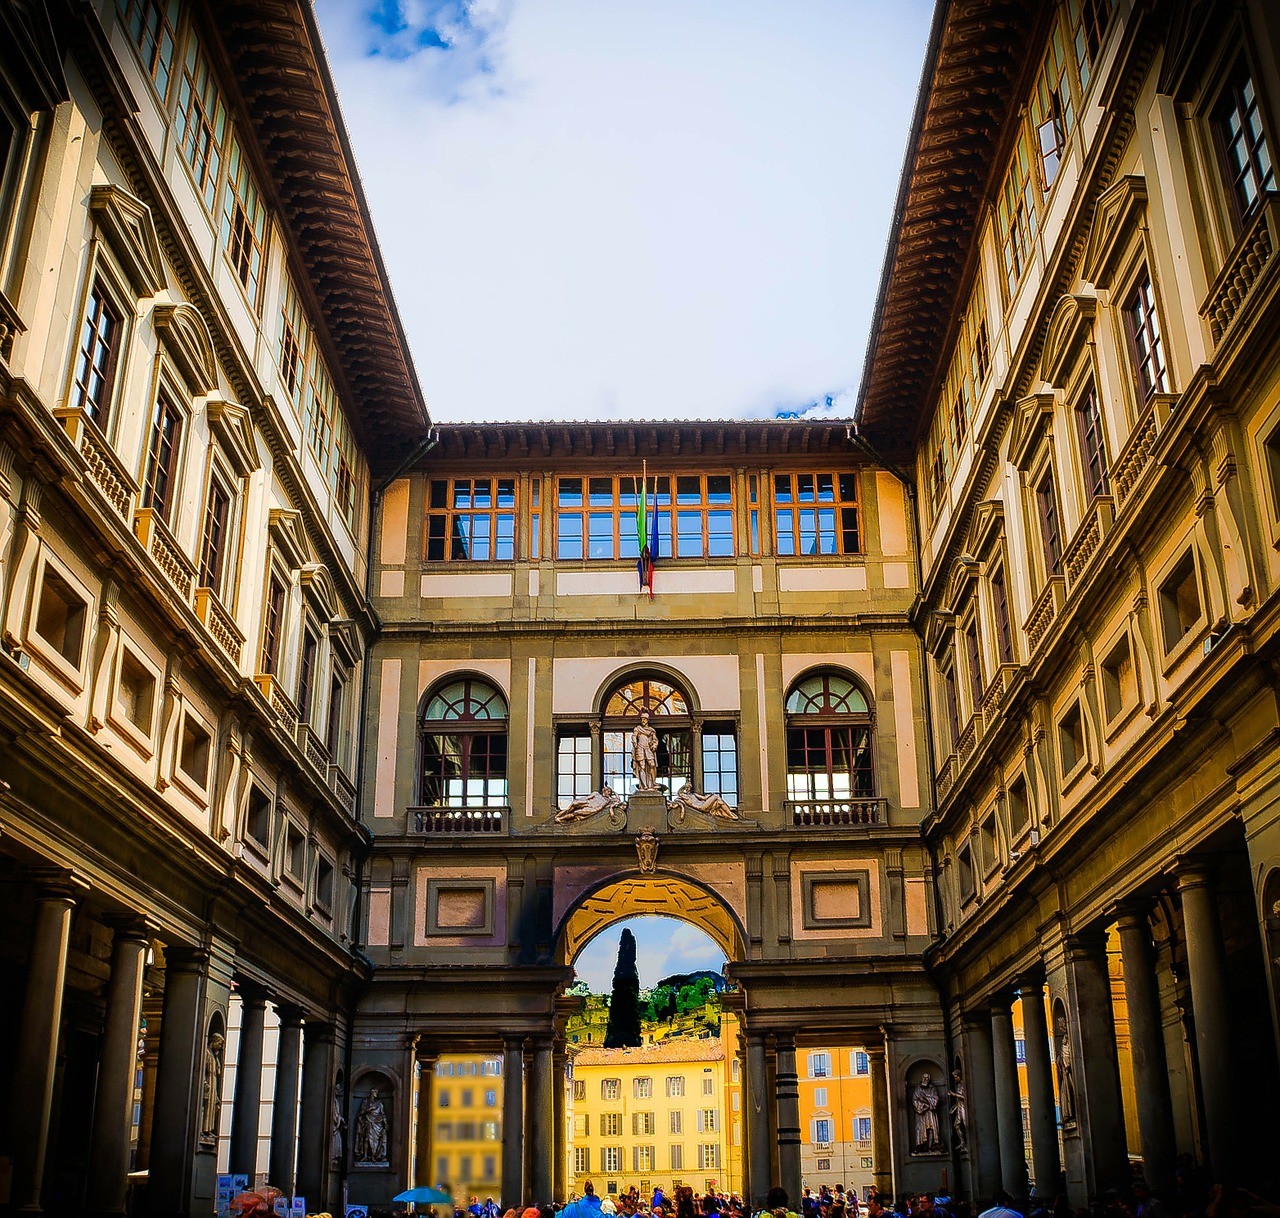 Uffizi Gallery - Things to Do in Florence - The Trusted Traveller